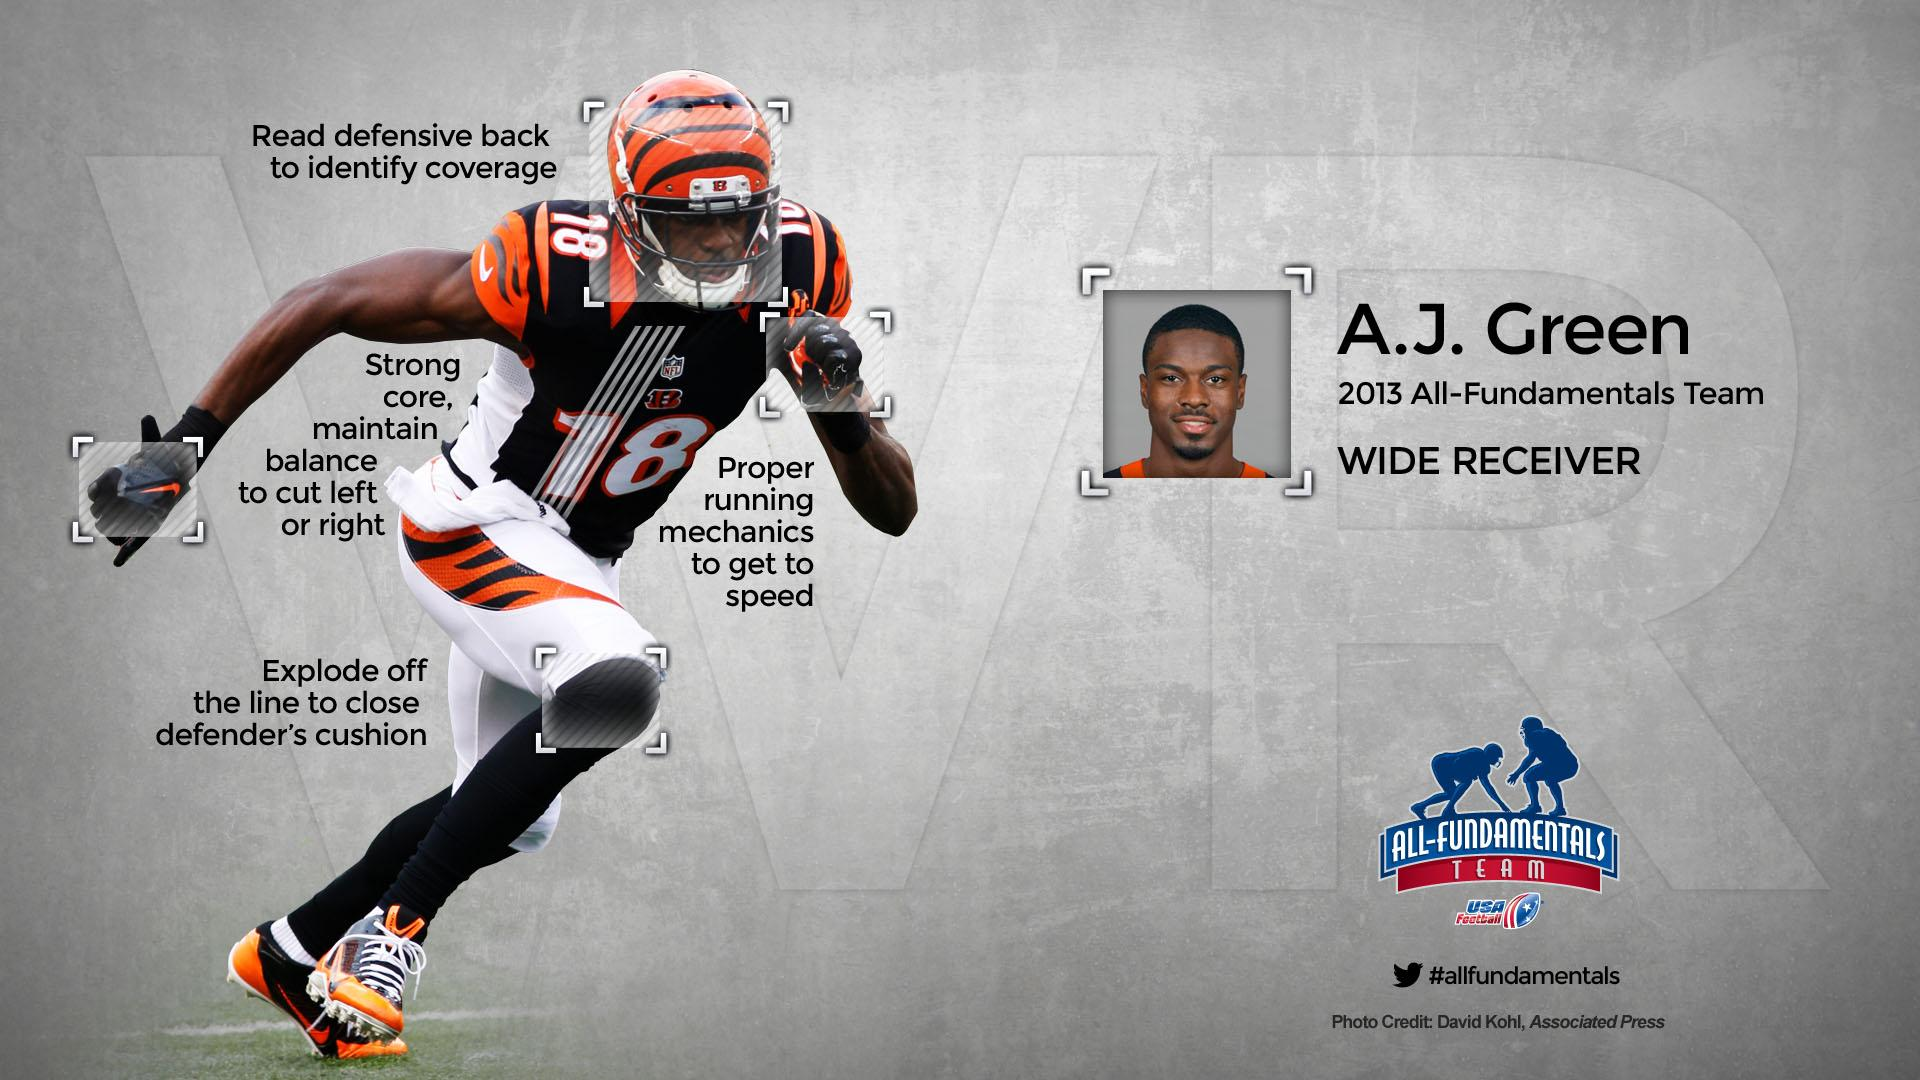 A.J. Green Wallpapers HD Collection For Free Download